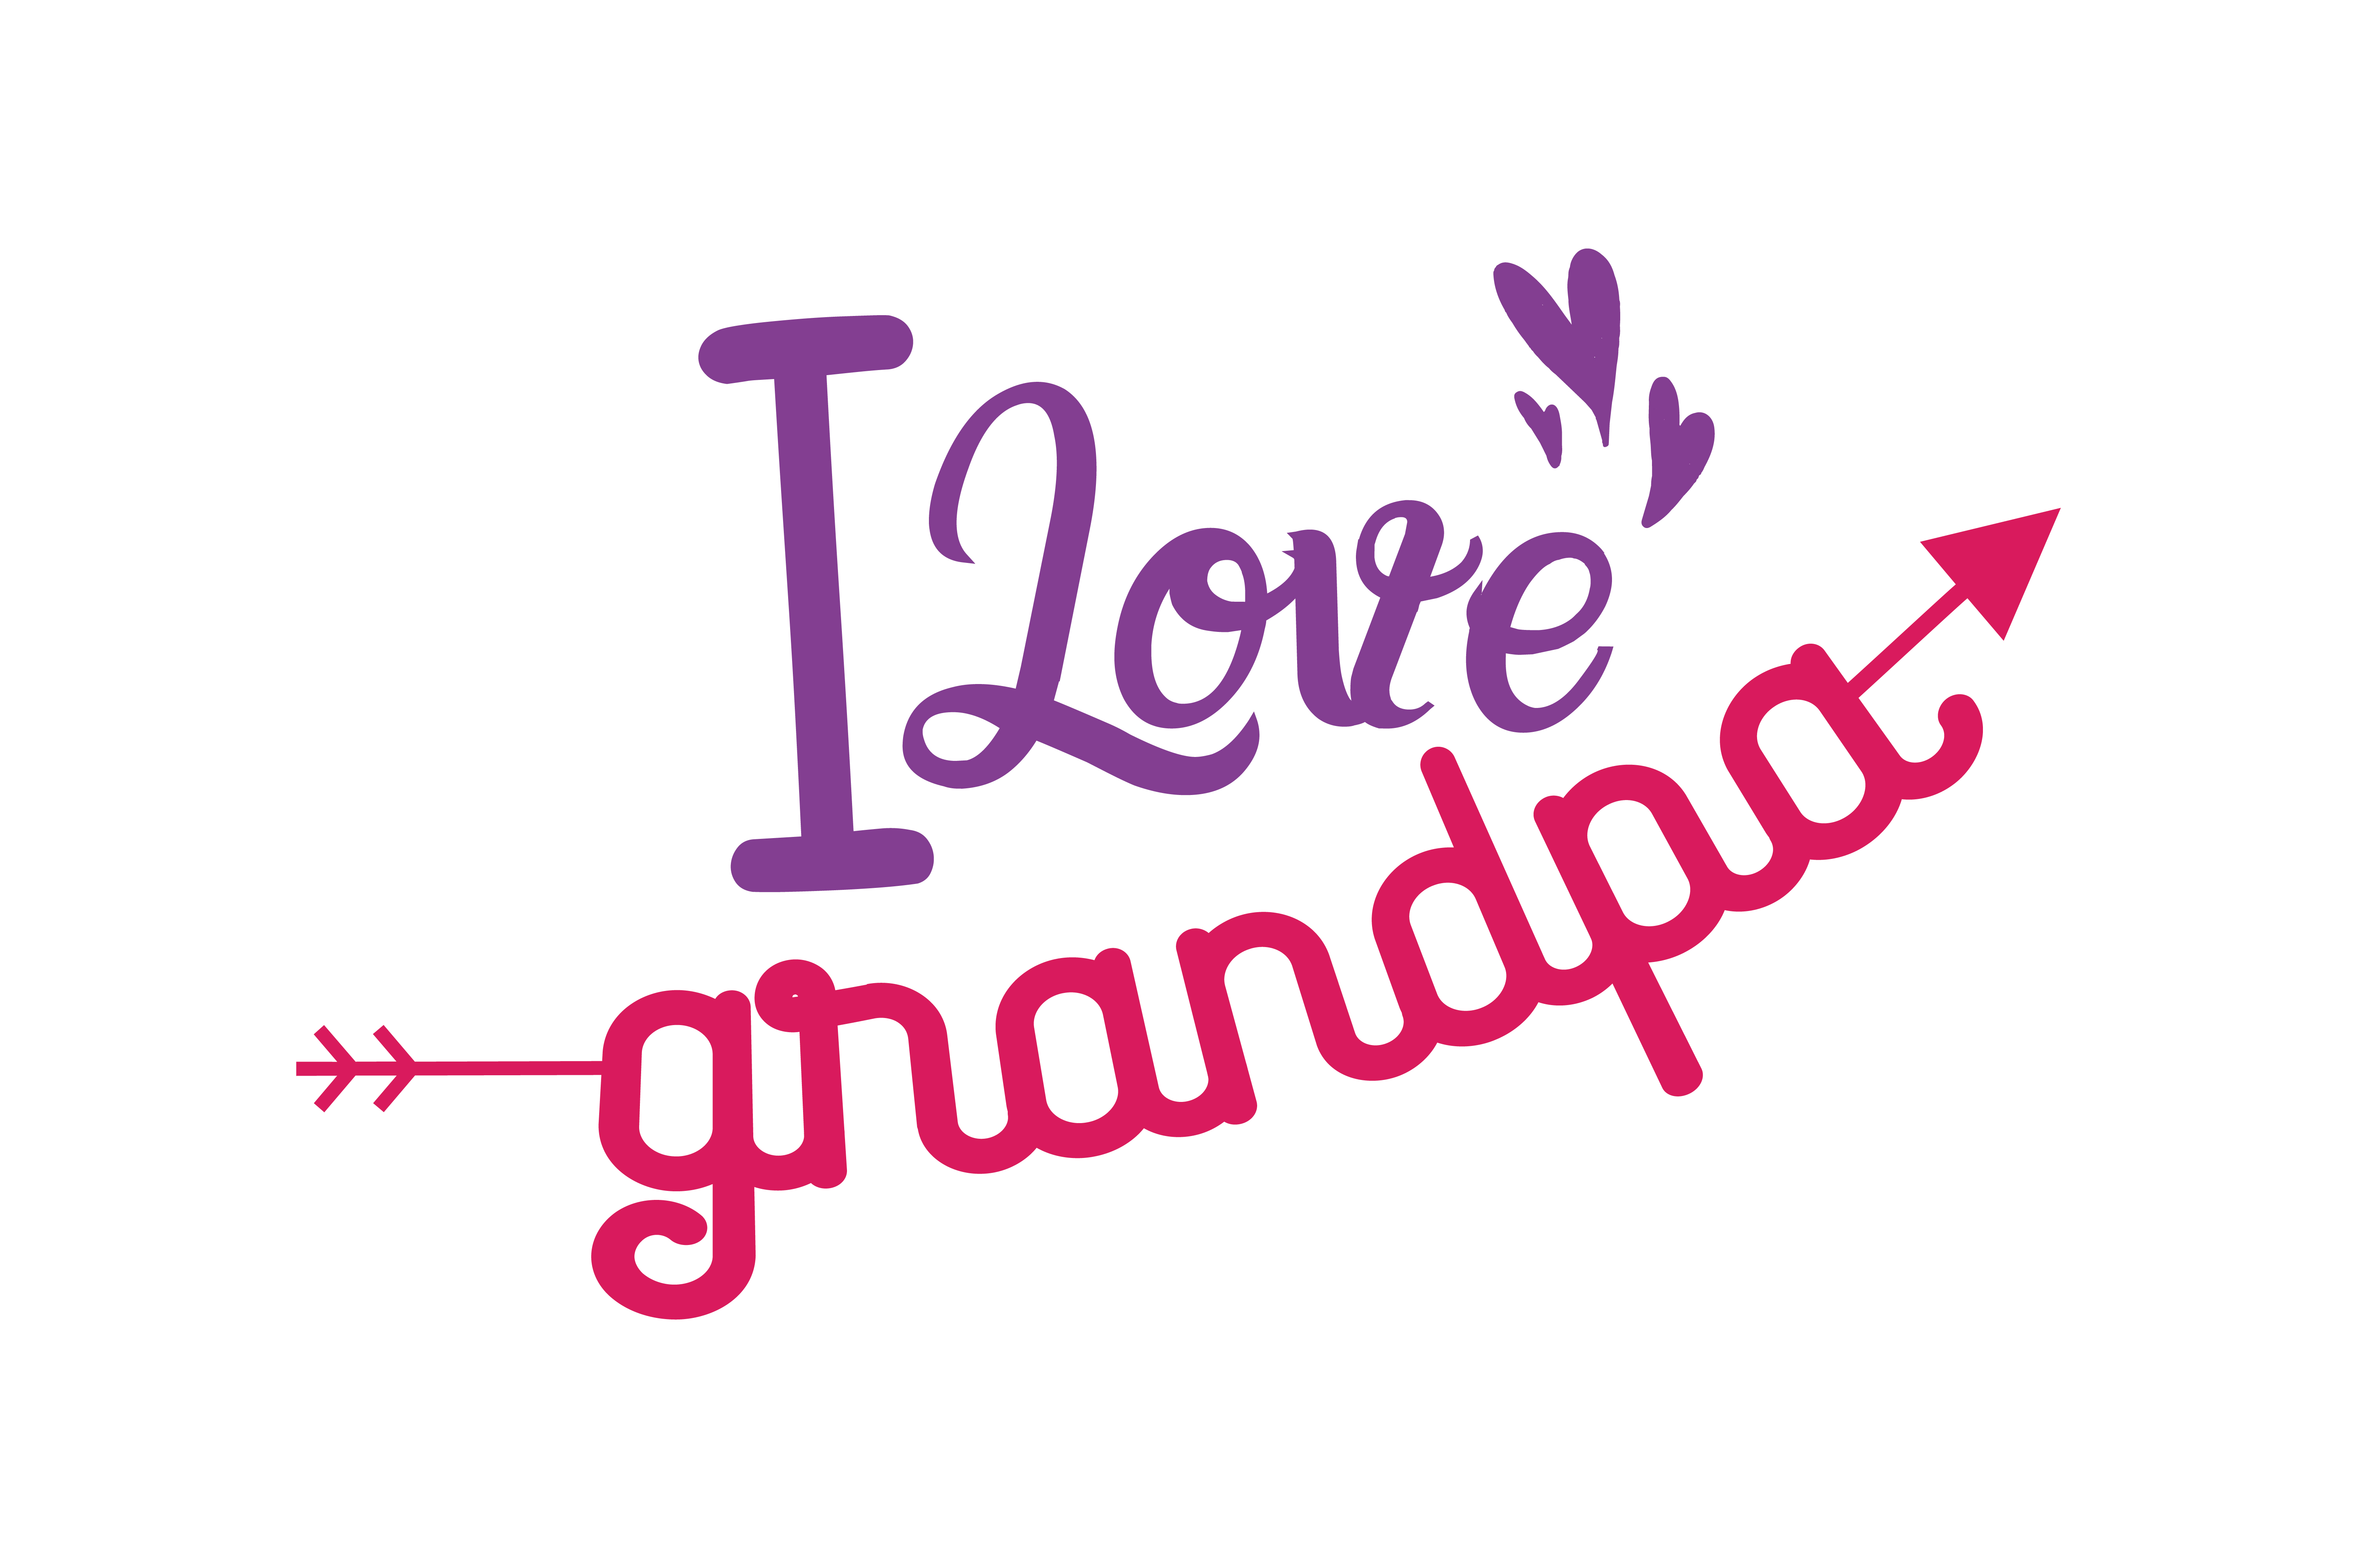 I Love Grandpa Quote Svg Cut Graphic By Thelucky Creative Fabrica